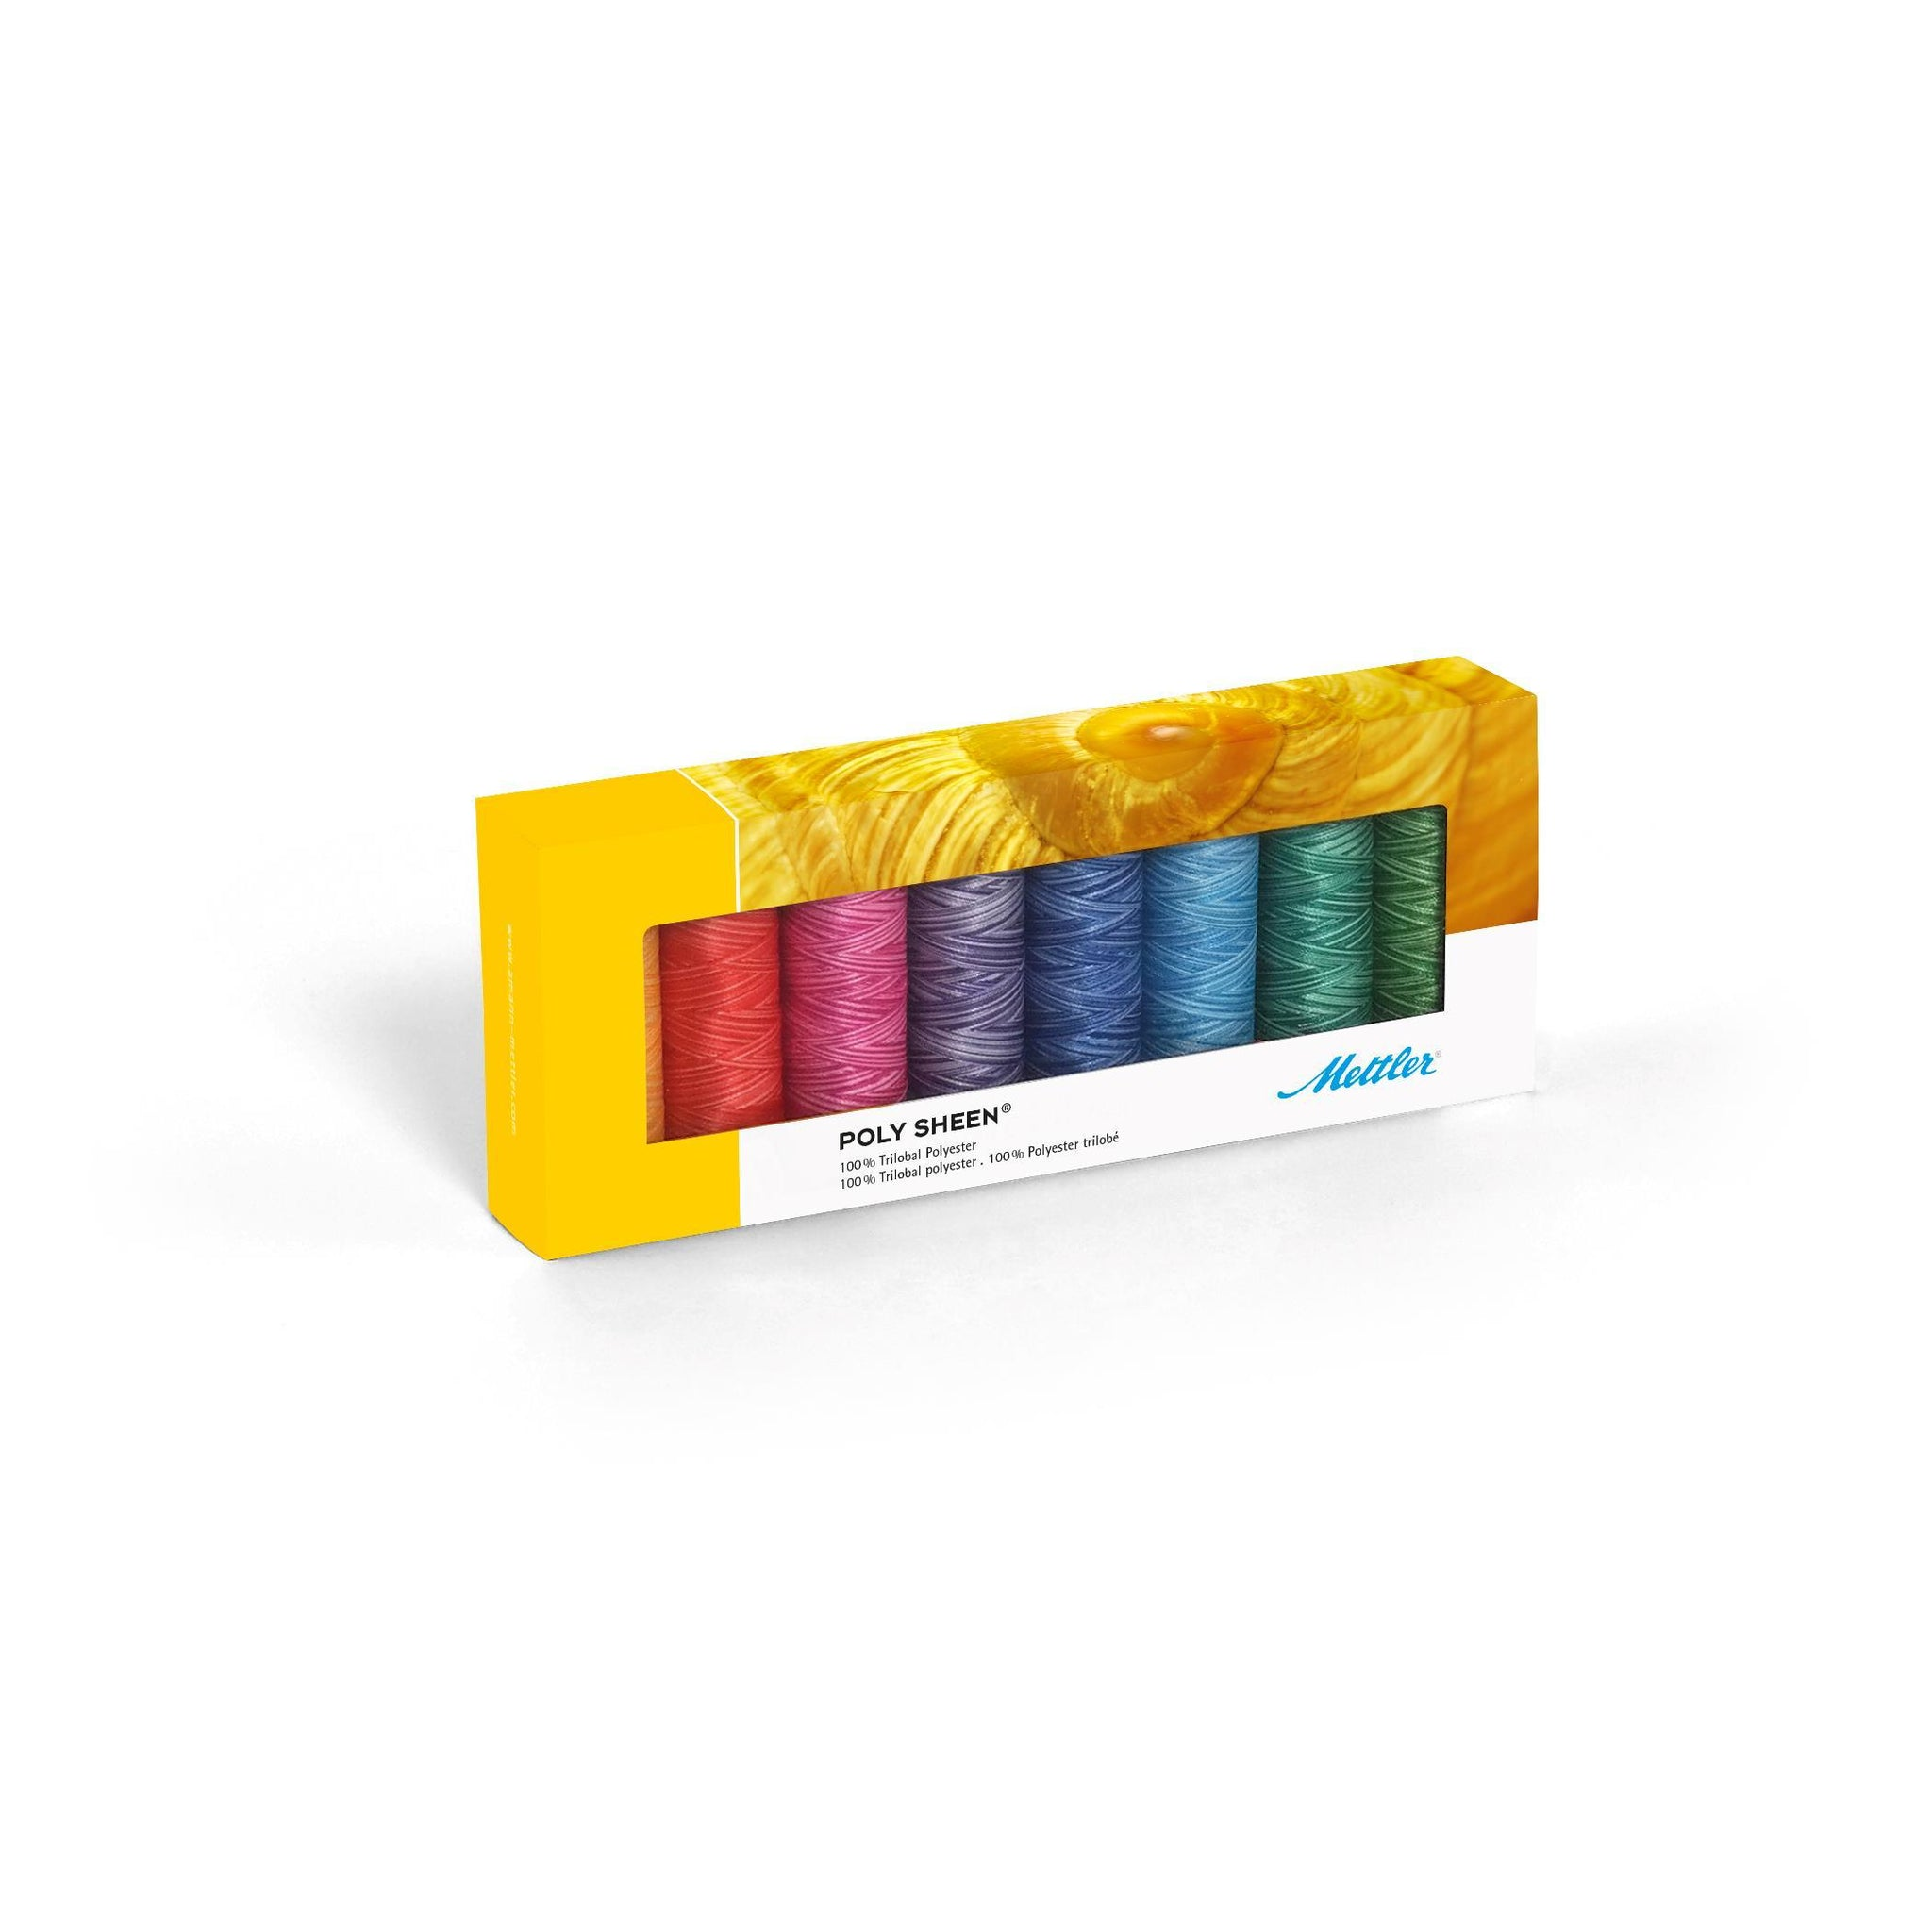 Mettler Poly Sheen Pastels Kit No. 40 200m 8 spools - thread set